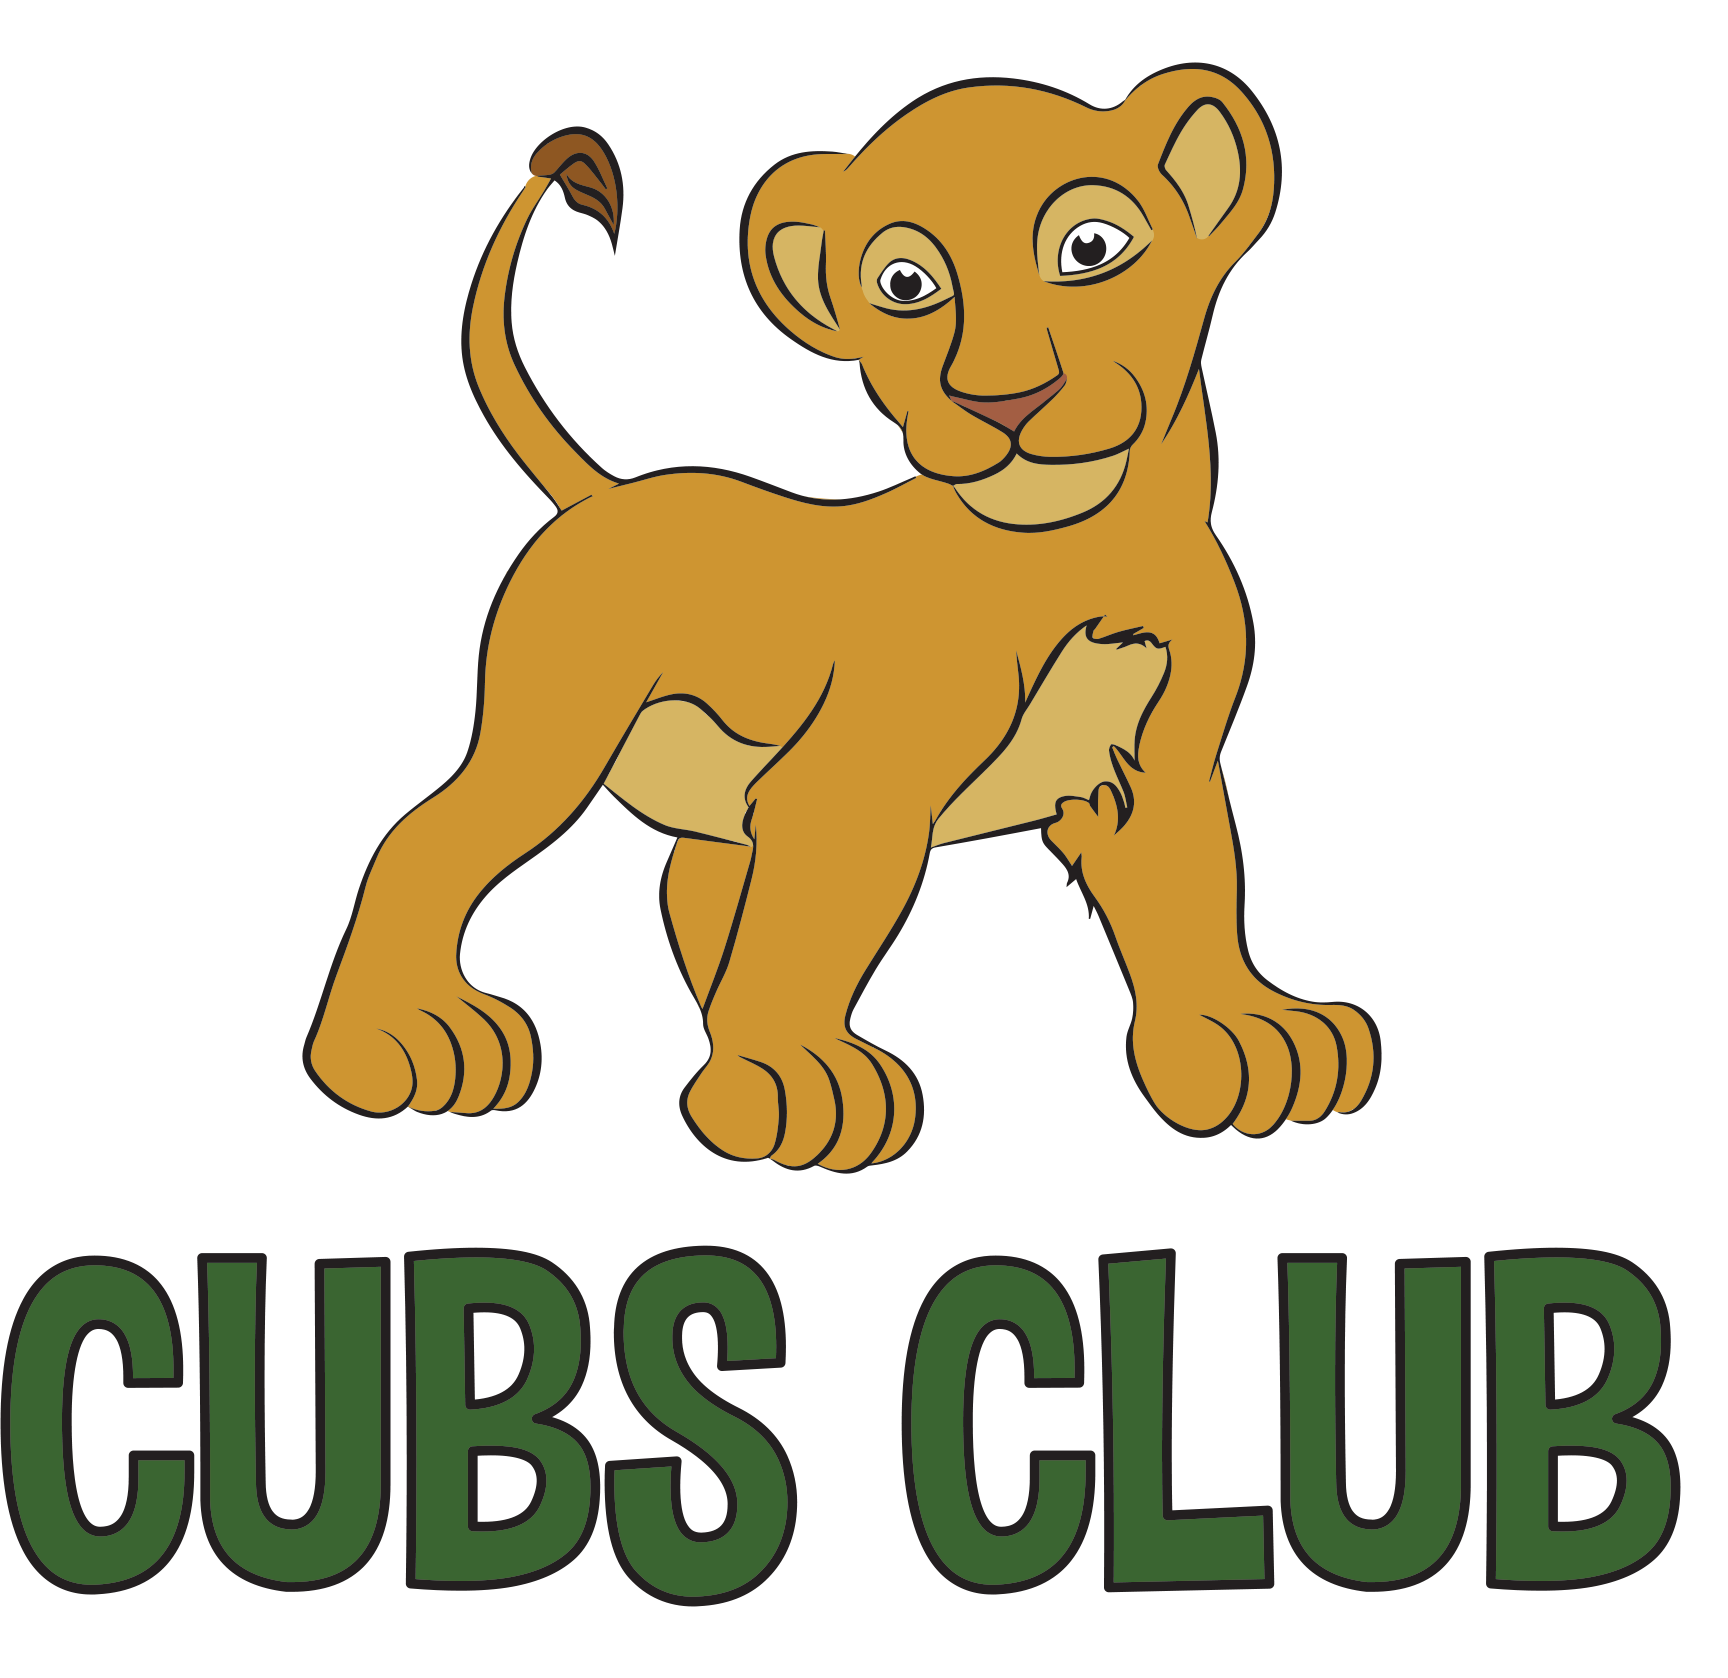 Learn About Cubs Club